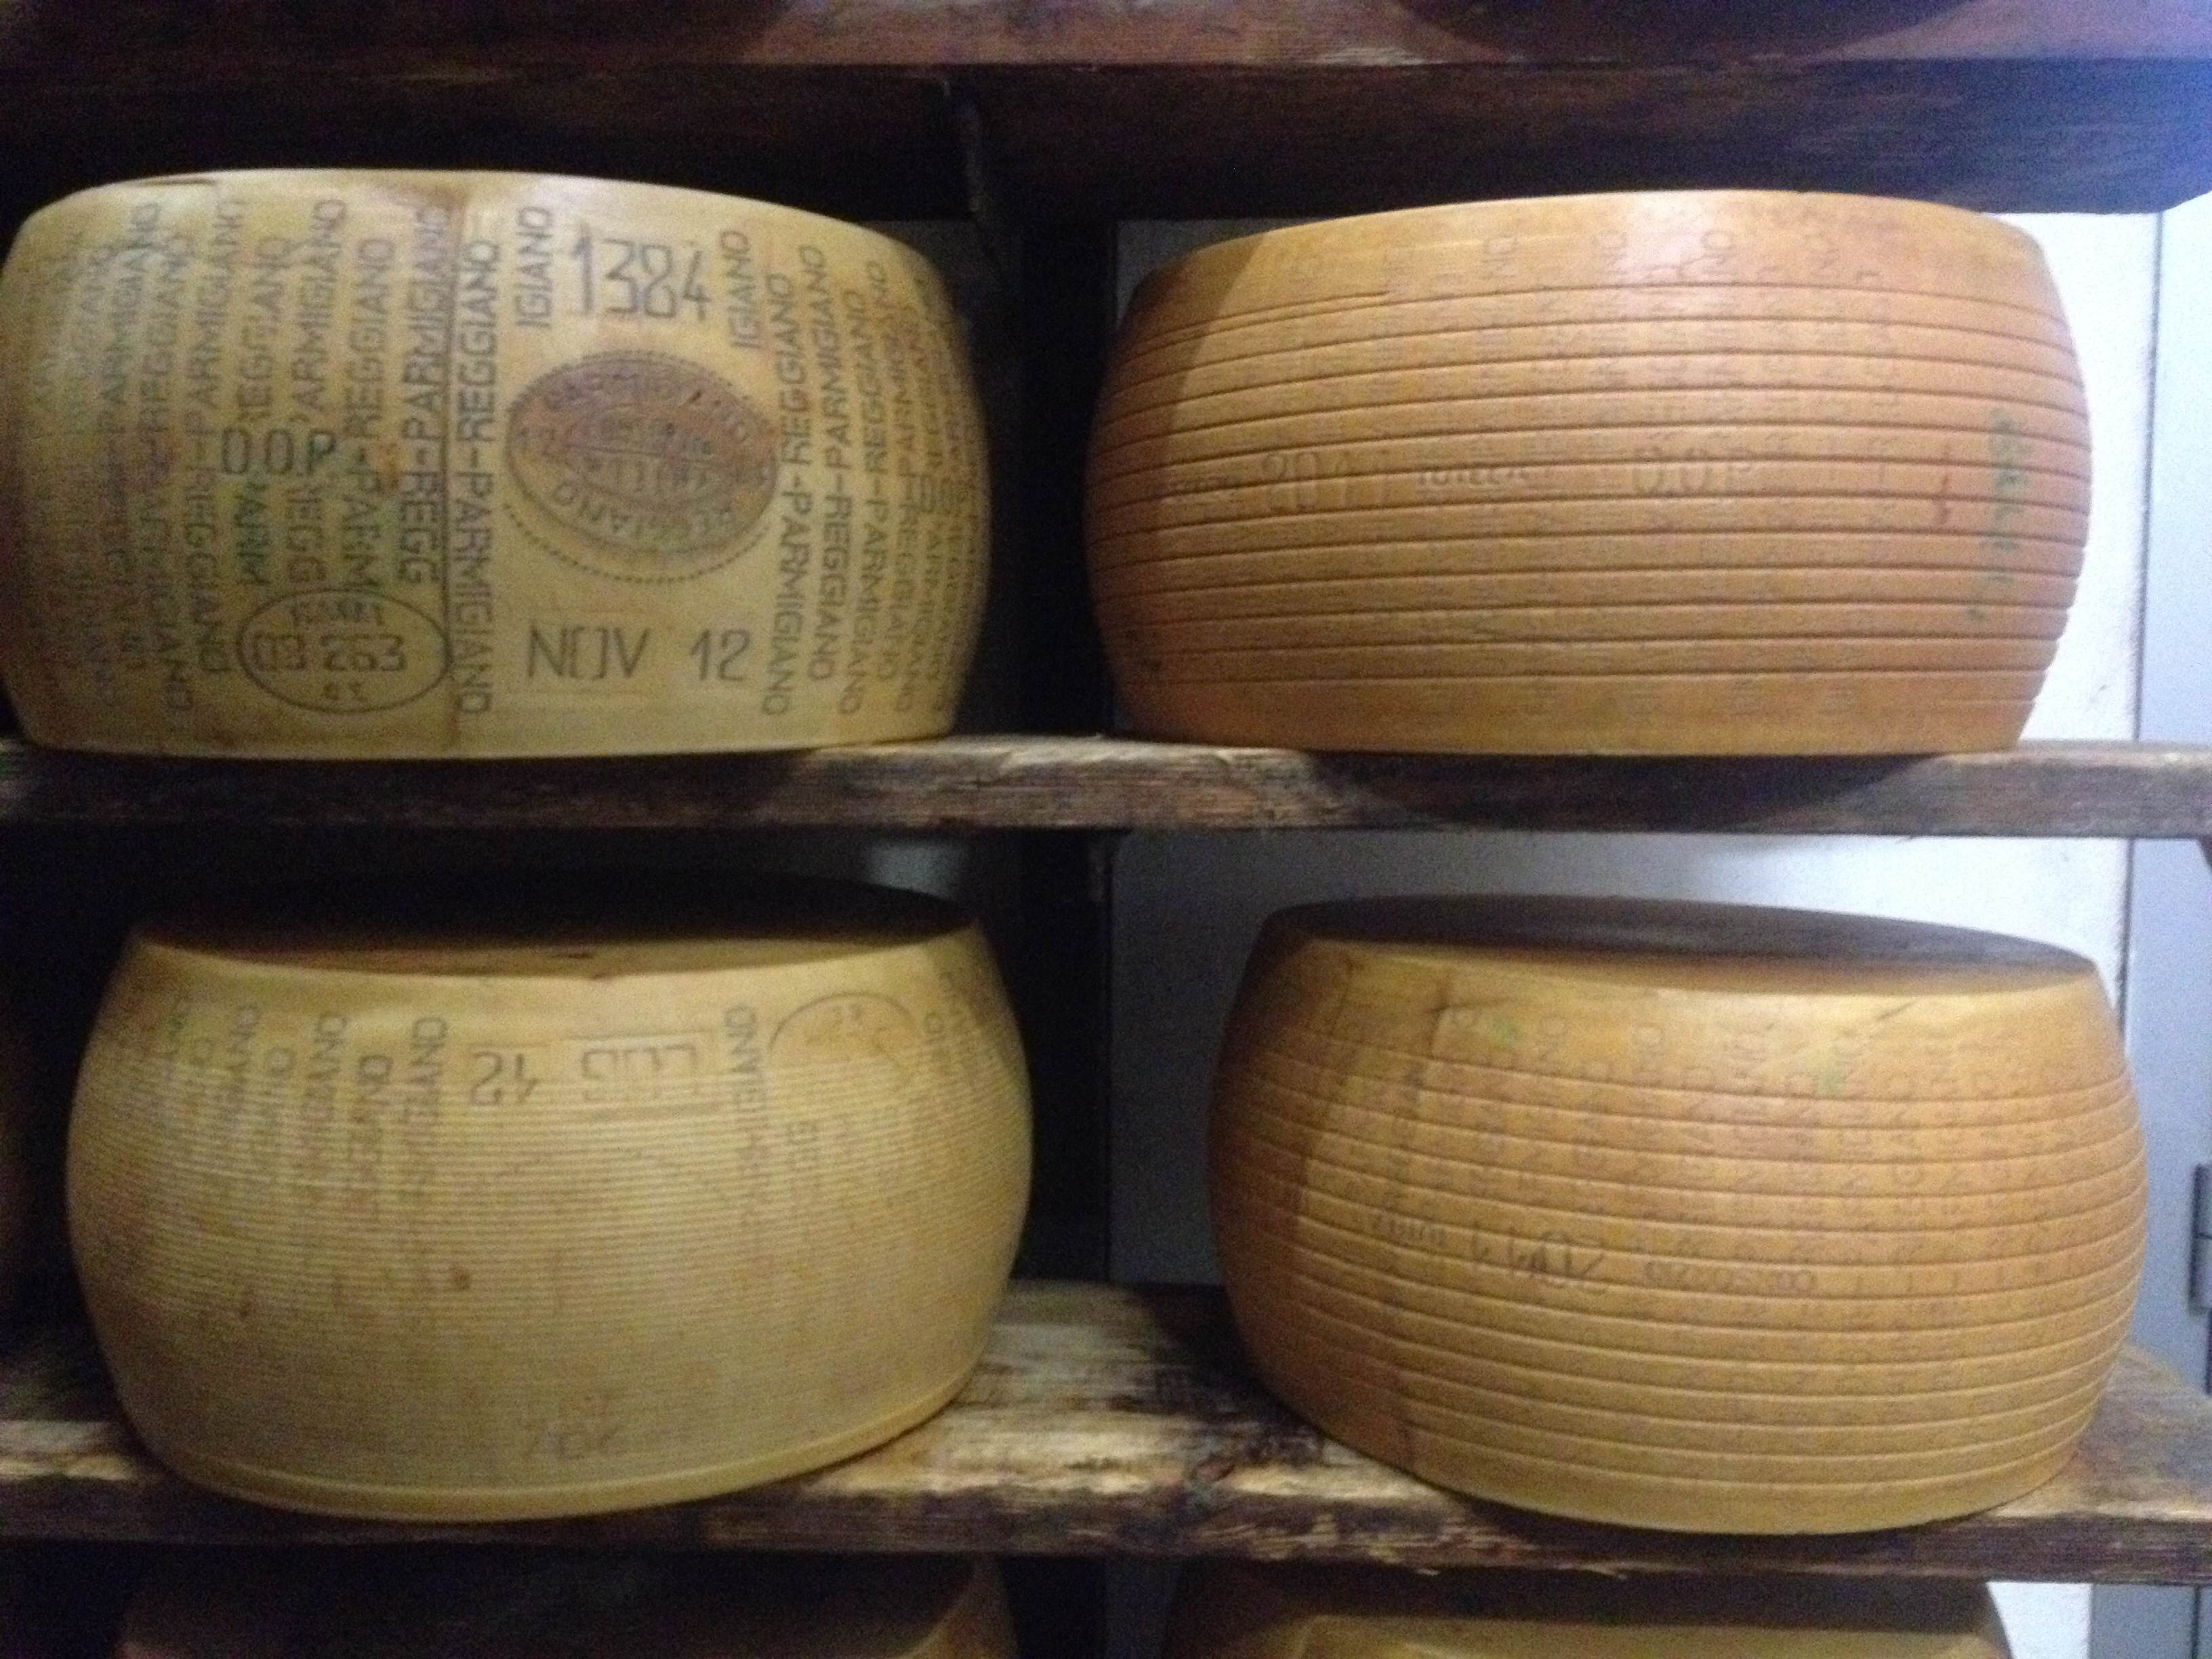 Four_Parmigiano-Reggiano_wheels_with_classifications.JPG